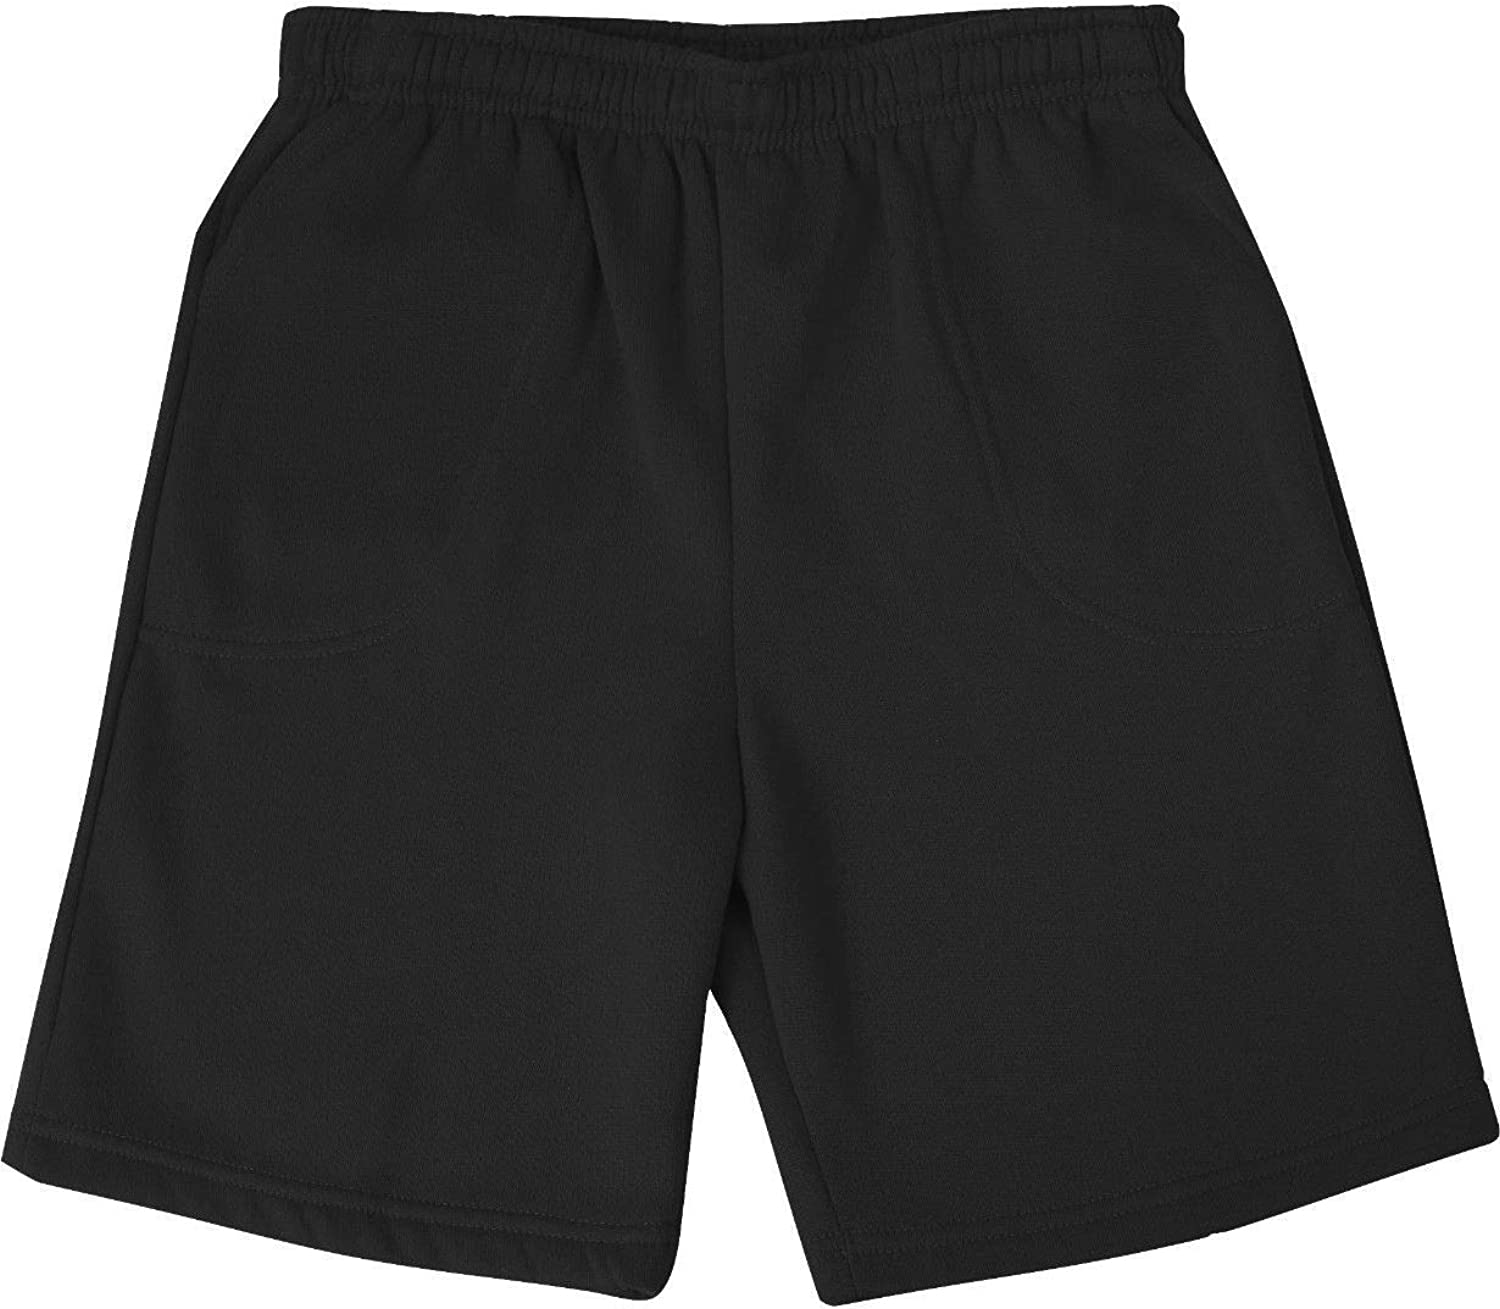 Big and Tall Beefy Fleece Sweat Shorts to 10X Big in Navy, Grey, and Black